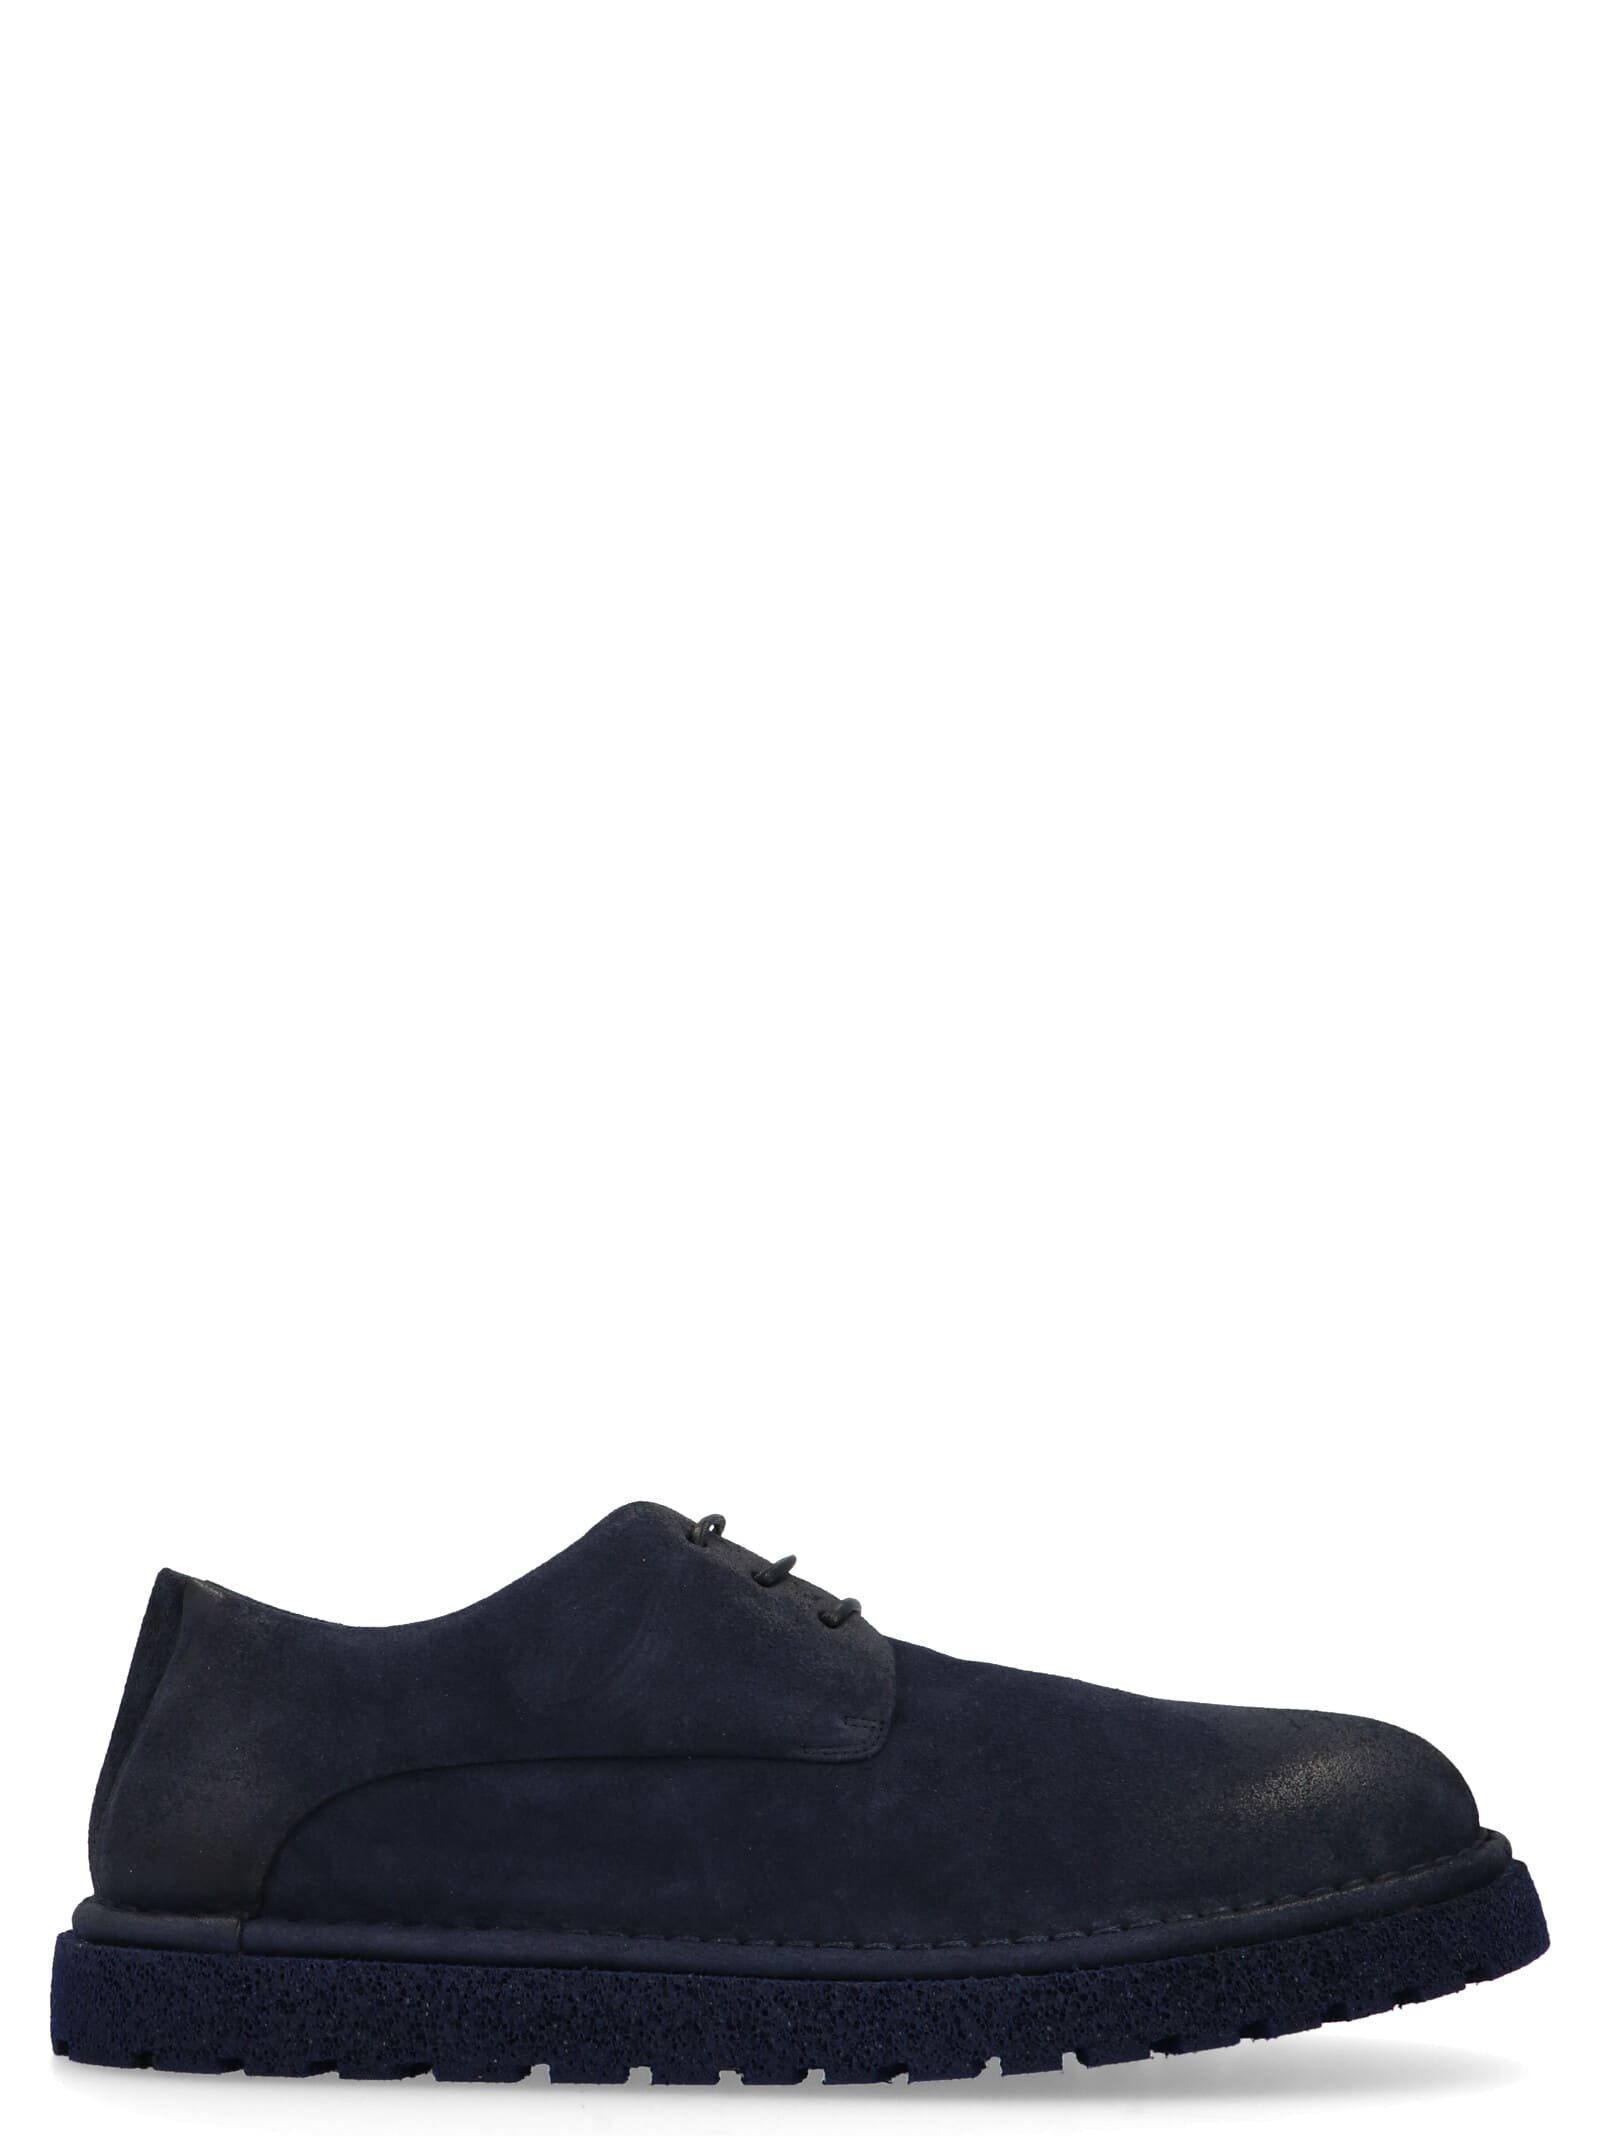 Marsell Laced Shoes | italist, ALWAYS